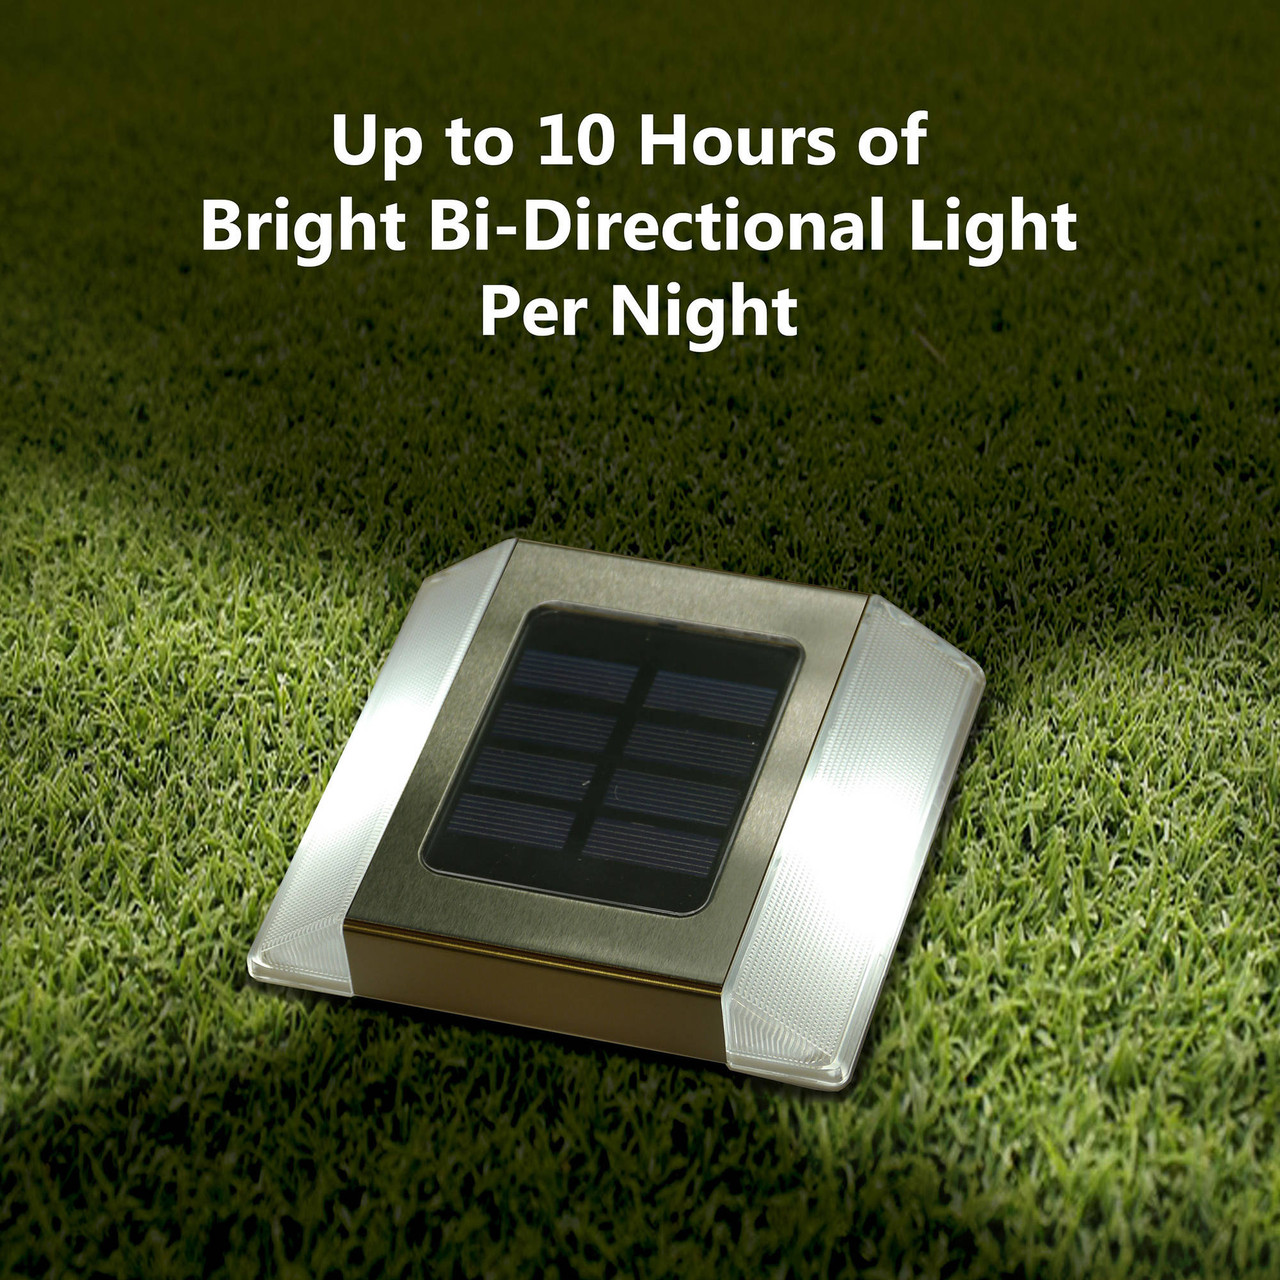 Stainless Steel Solar Path Light with Bi-Directional Light